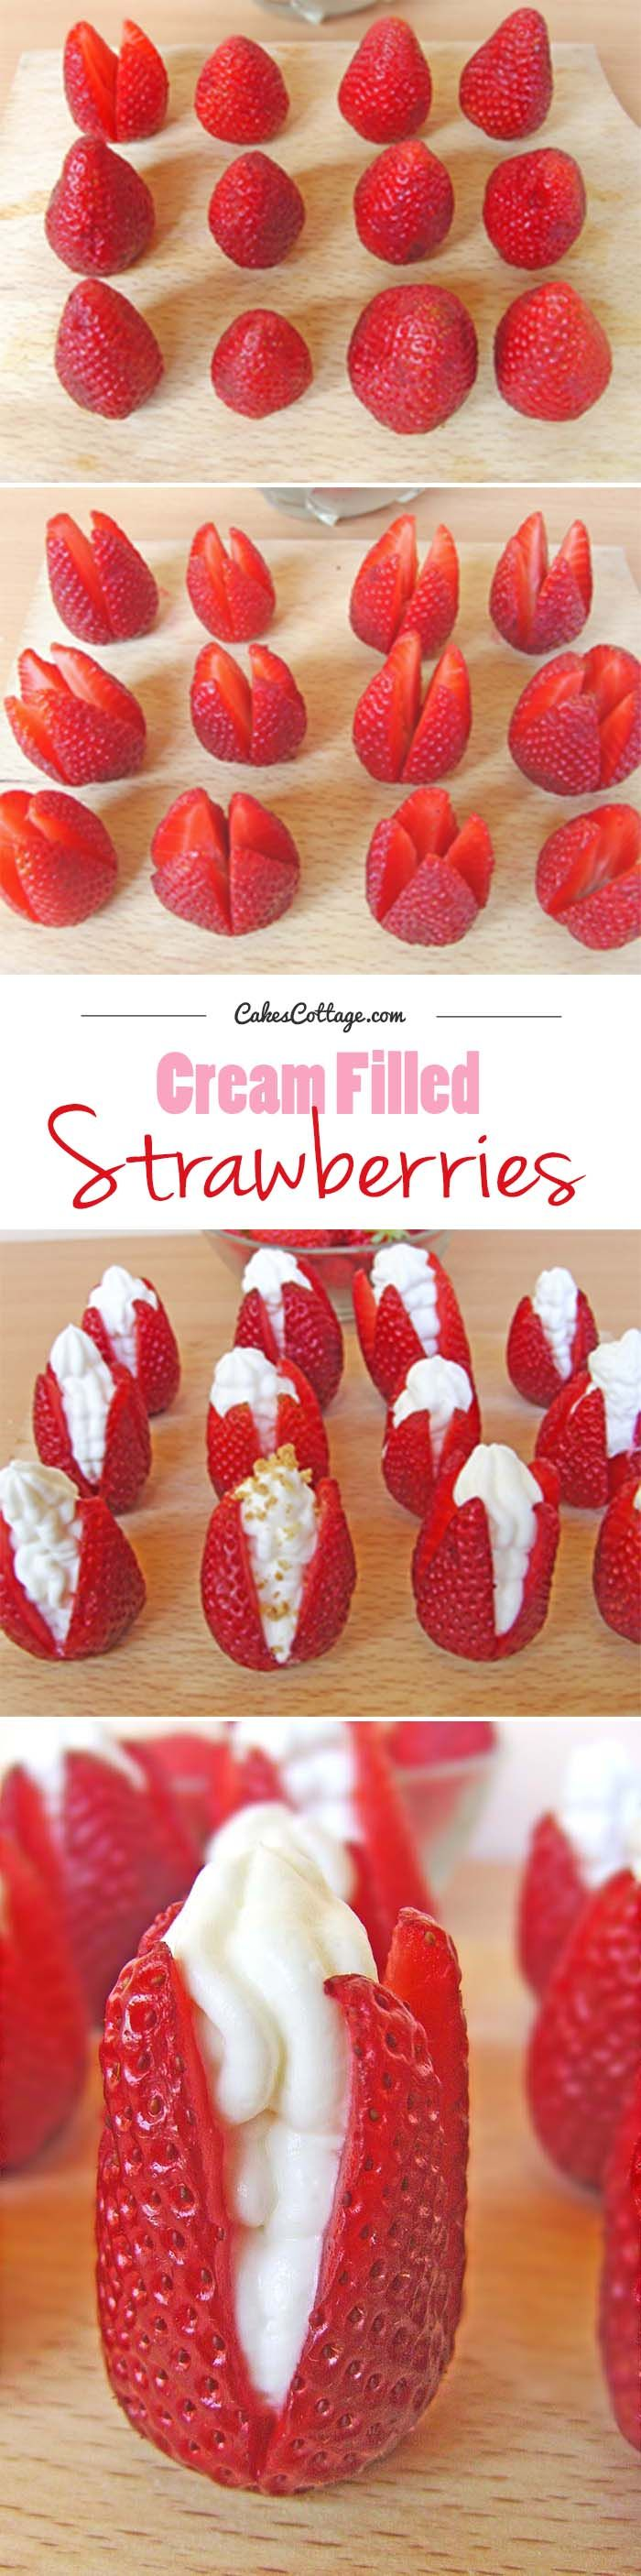 Delicious and unique way to serve the fresh strawberries. #strawberries